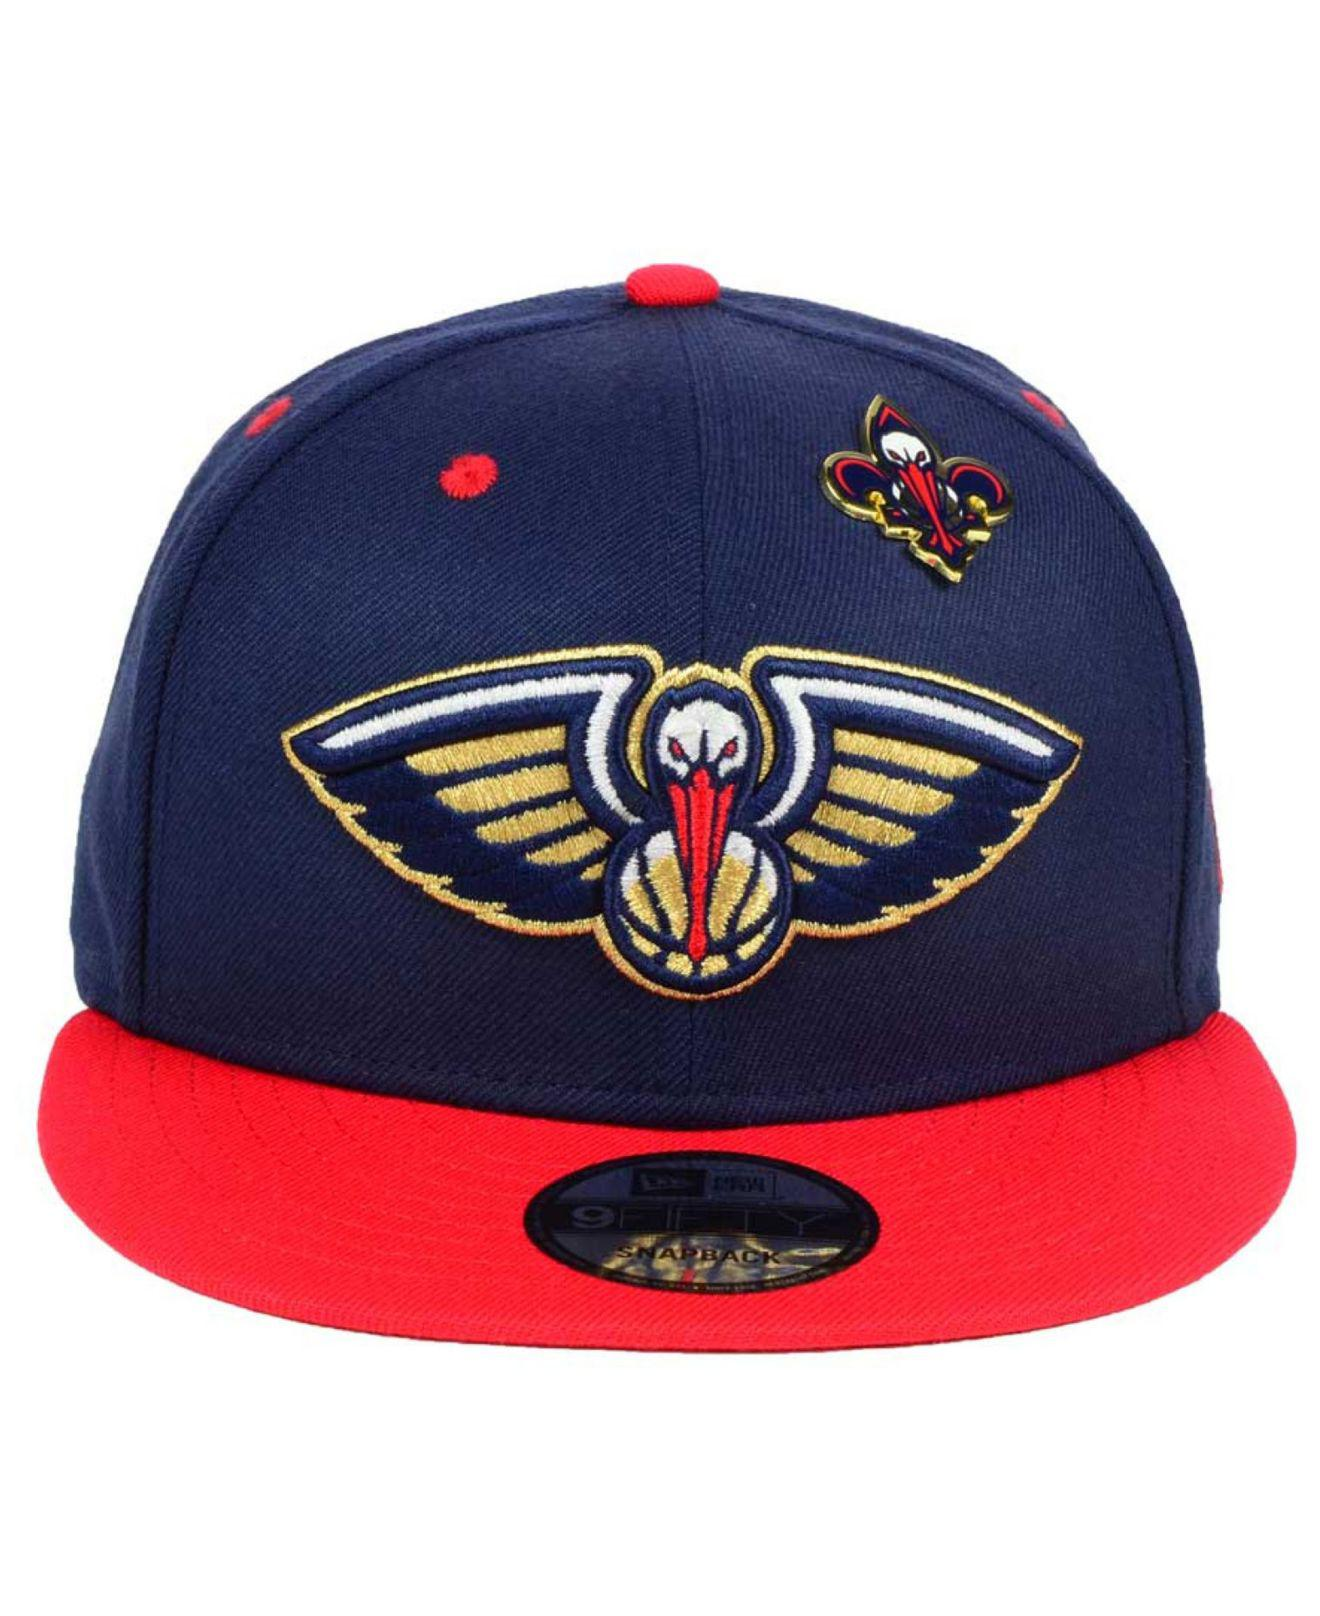 uk availability 0d616 5834a ... sweden lyst ktz new orleans pelicans pintastic 9fifty snapback cap in  blue for men 86eb4 ff220